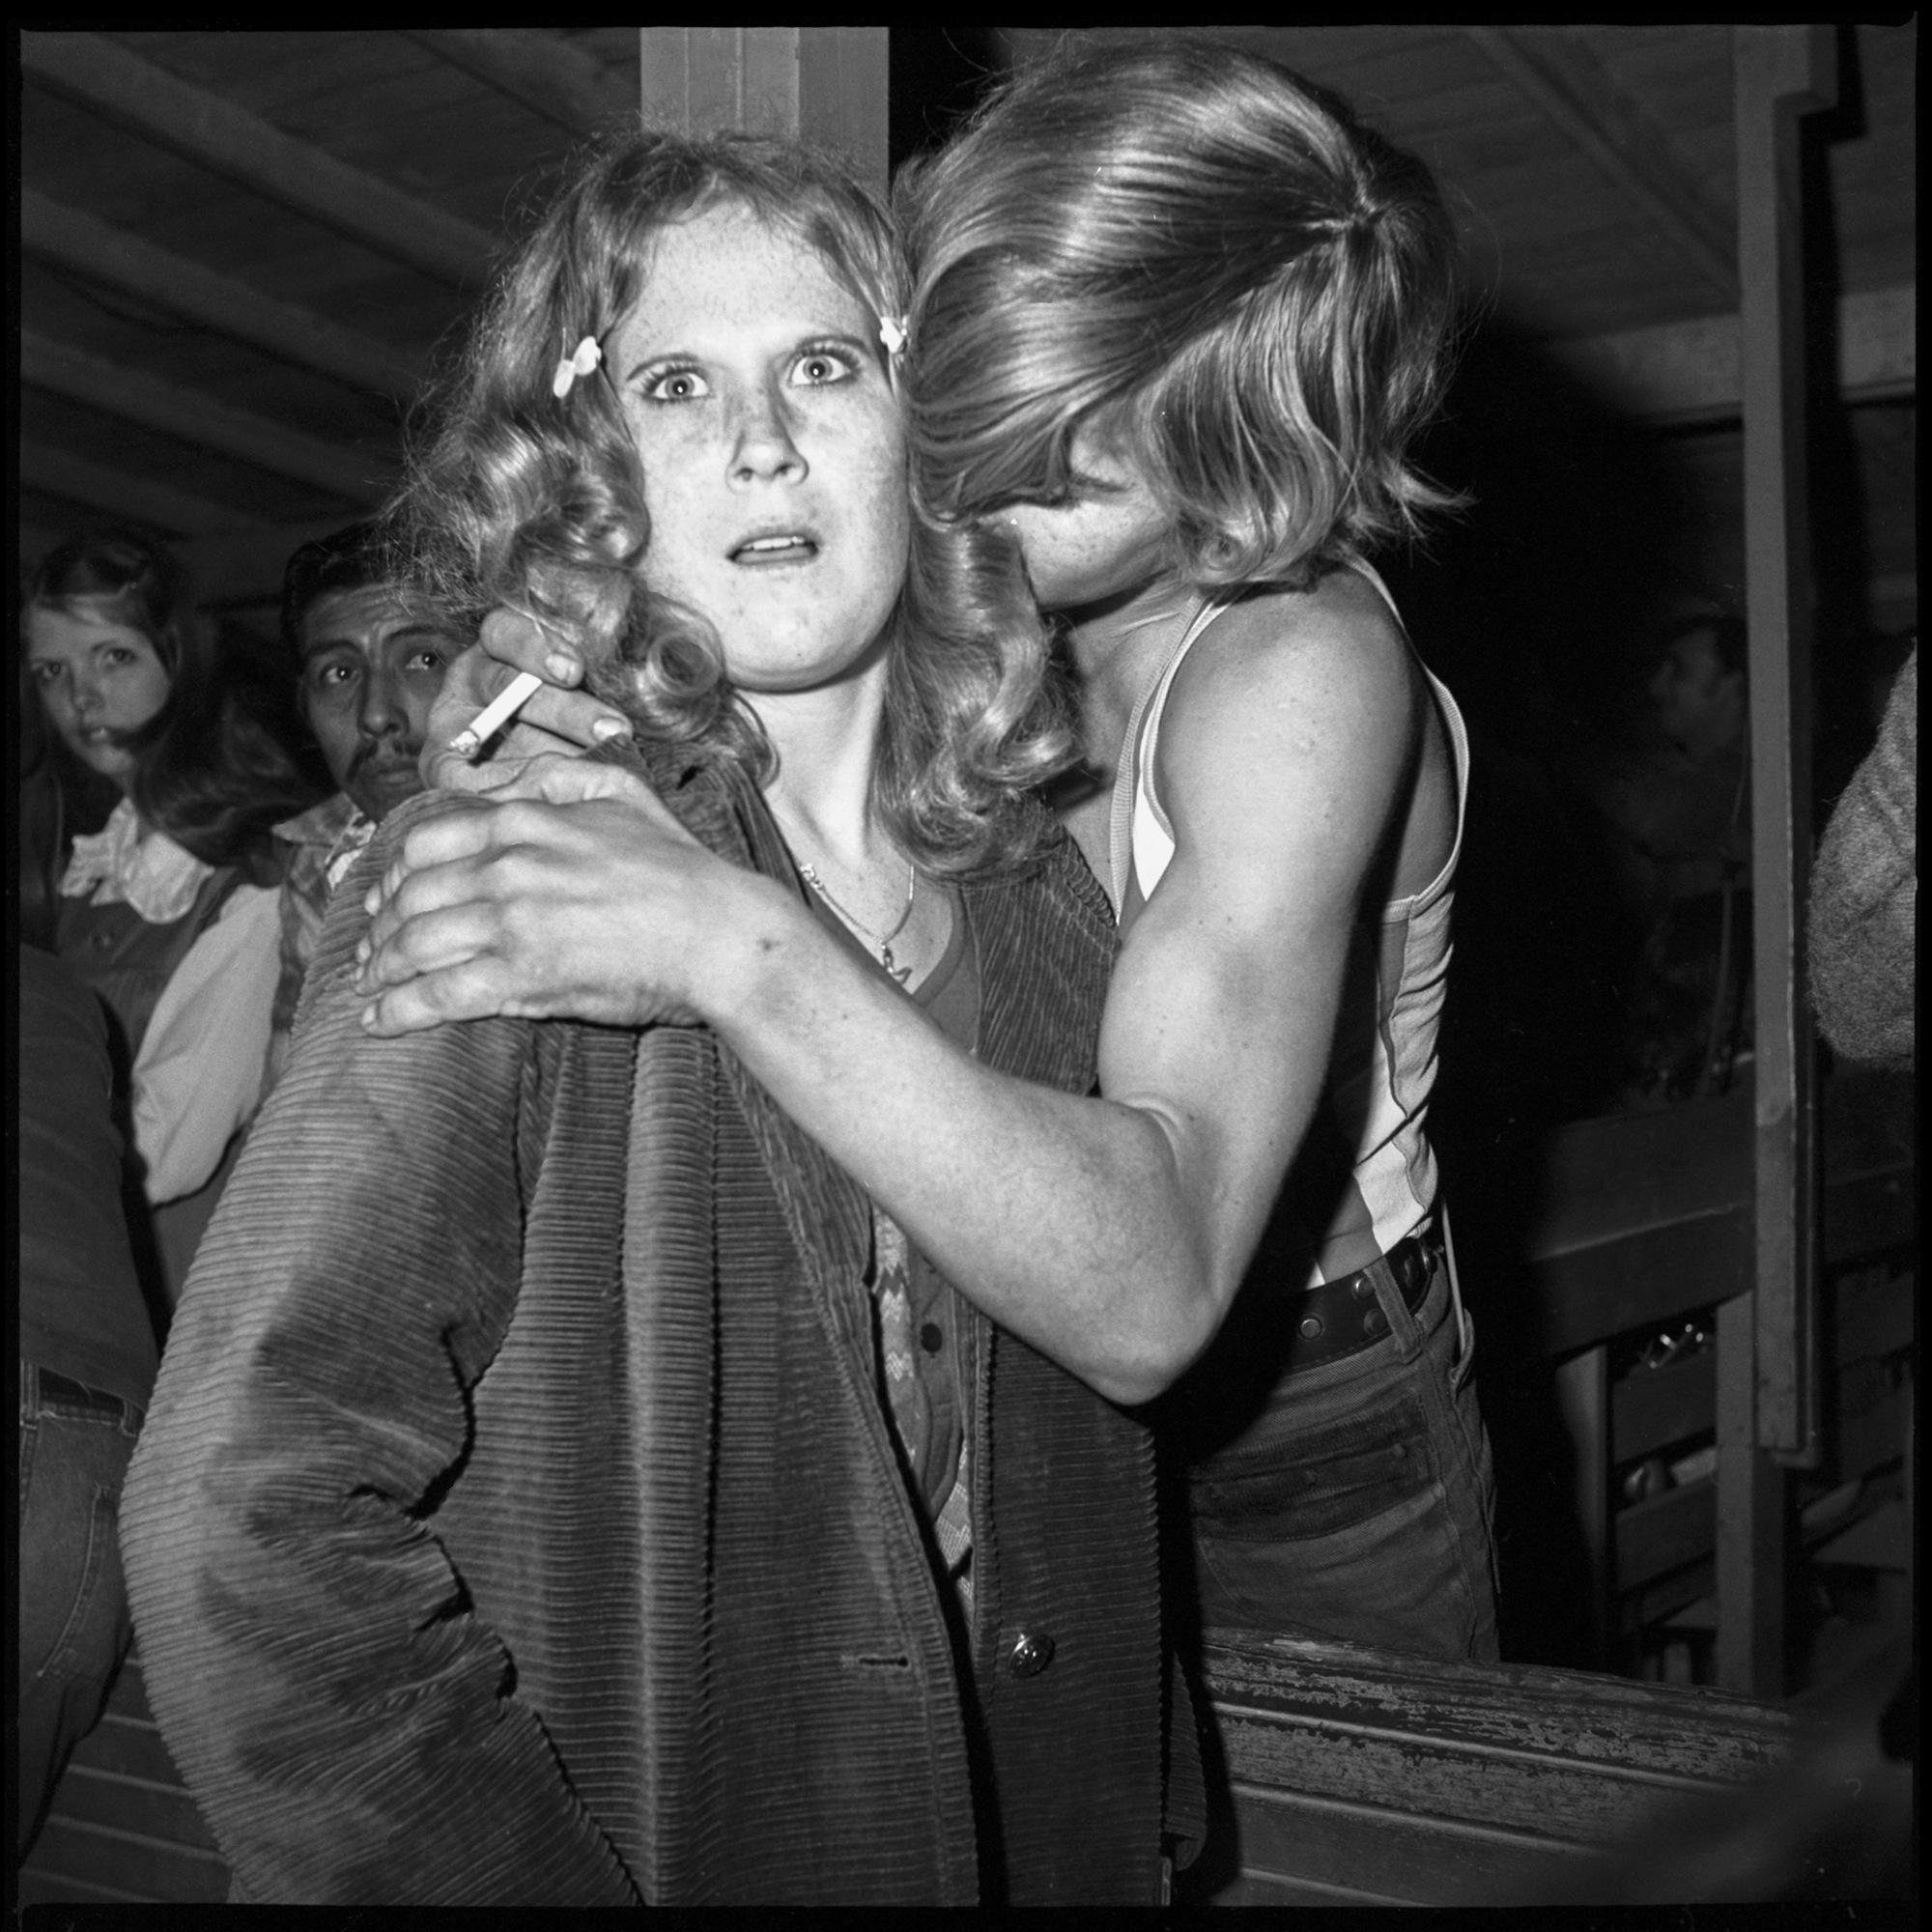 Roller skates in the 70s - Long Lost Photographs Of Southern 70s Roller Rink Teens